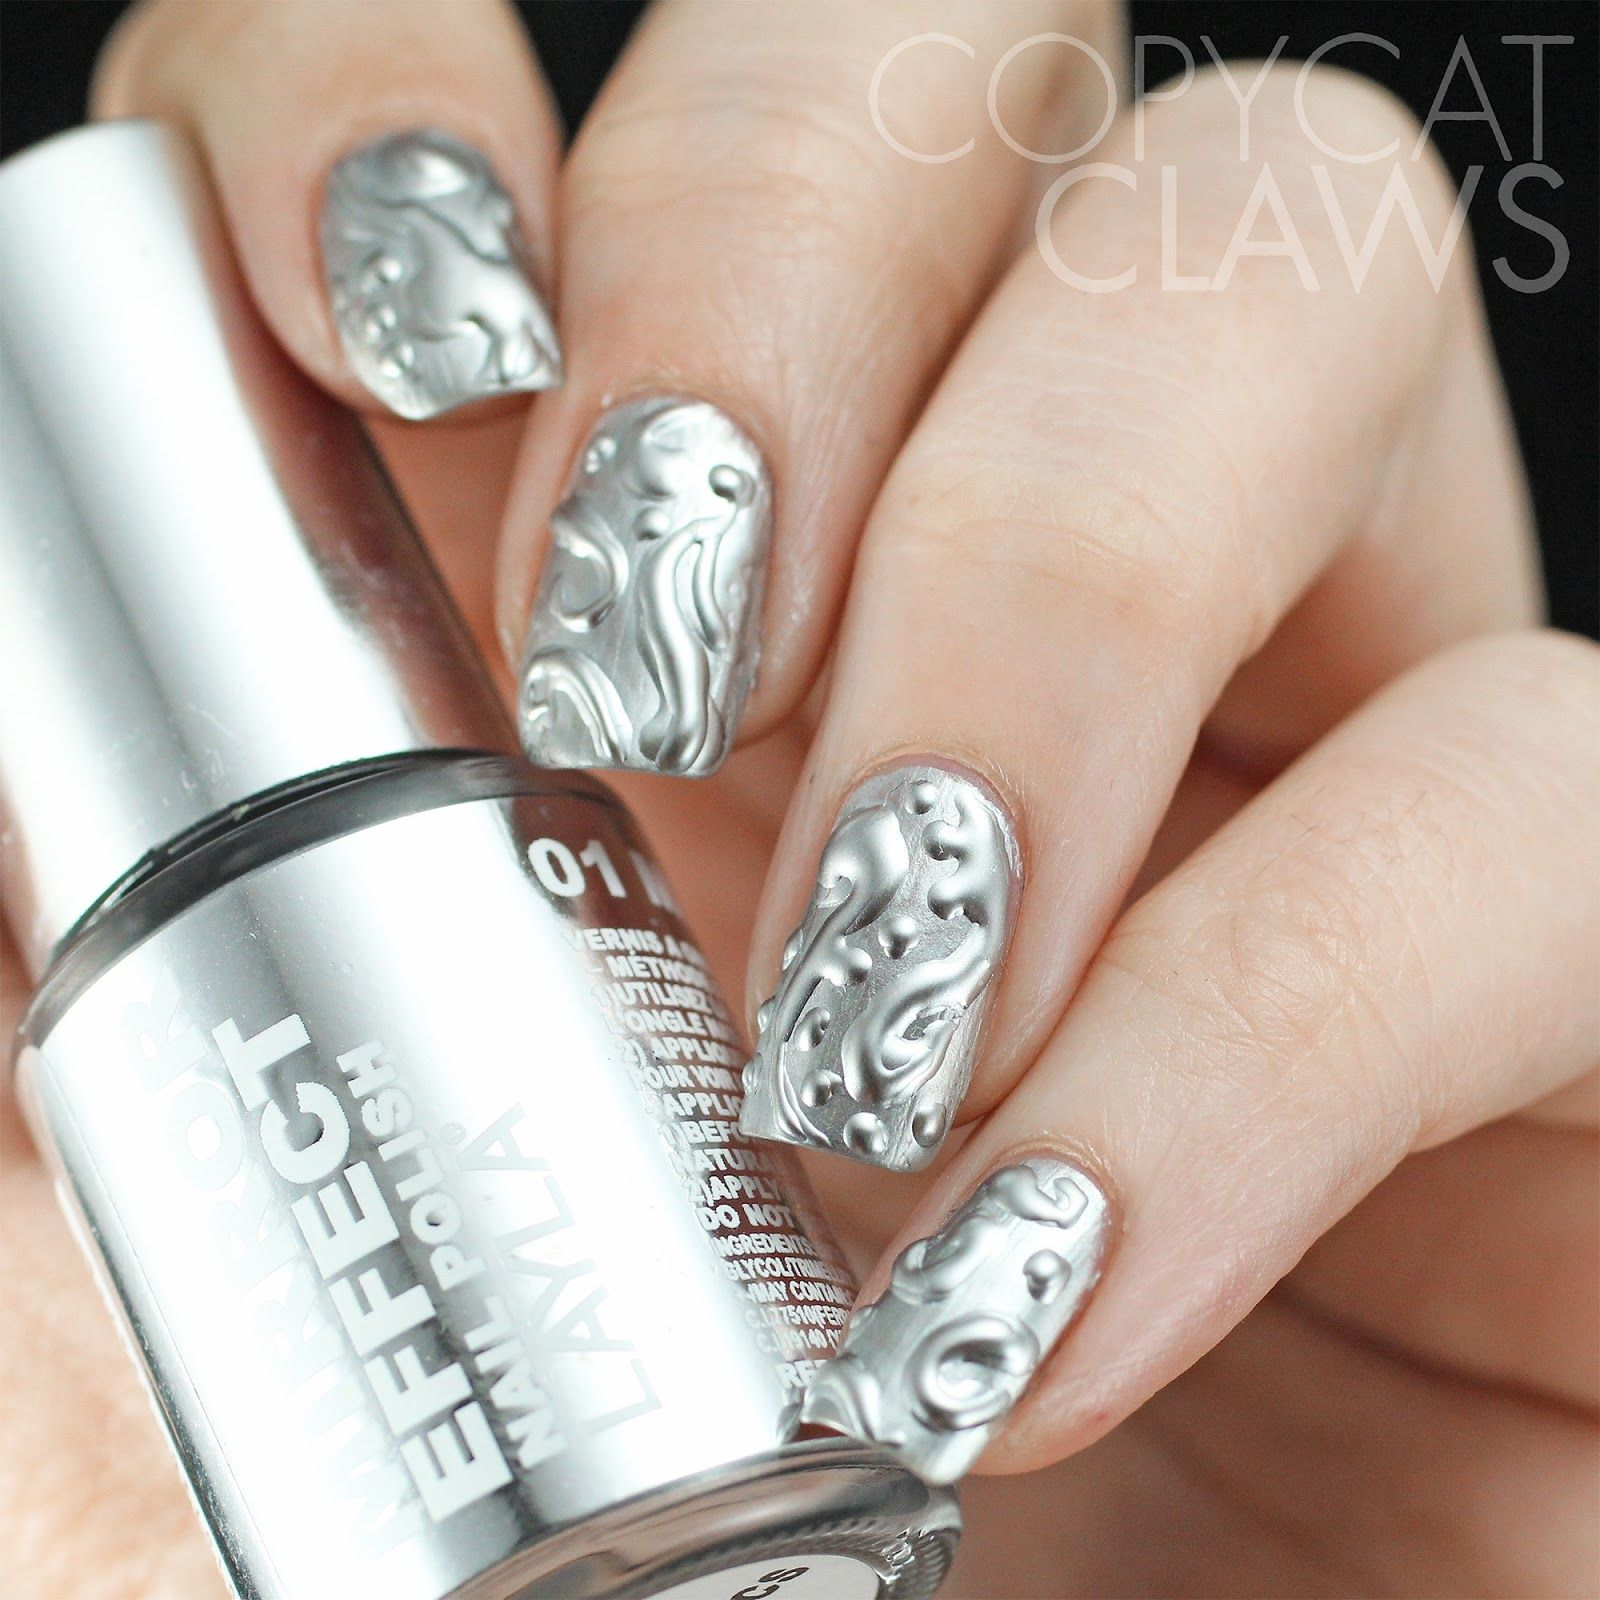 Copycat Claws: The Digit-al Dozen does New & Improved - Day 2 3D ...